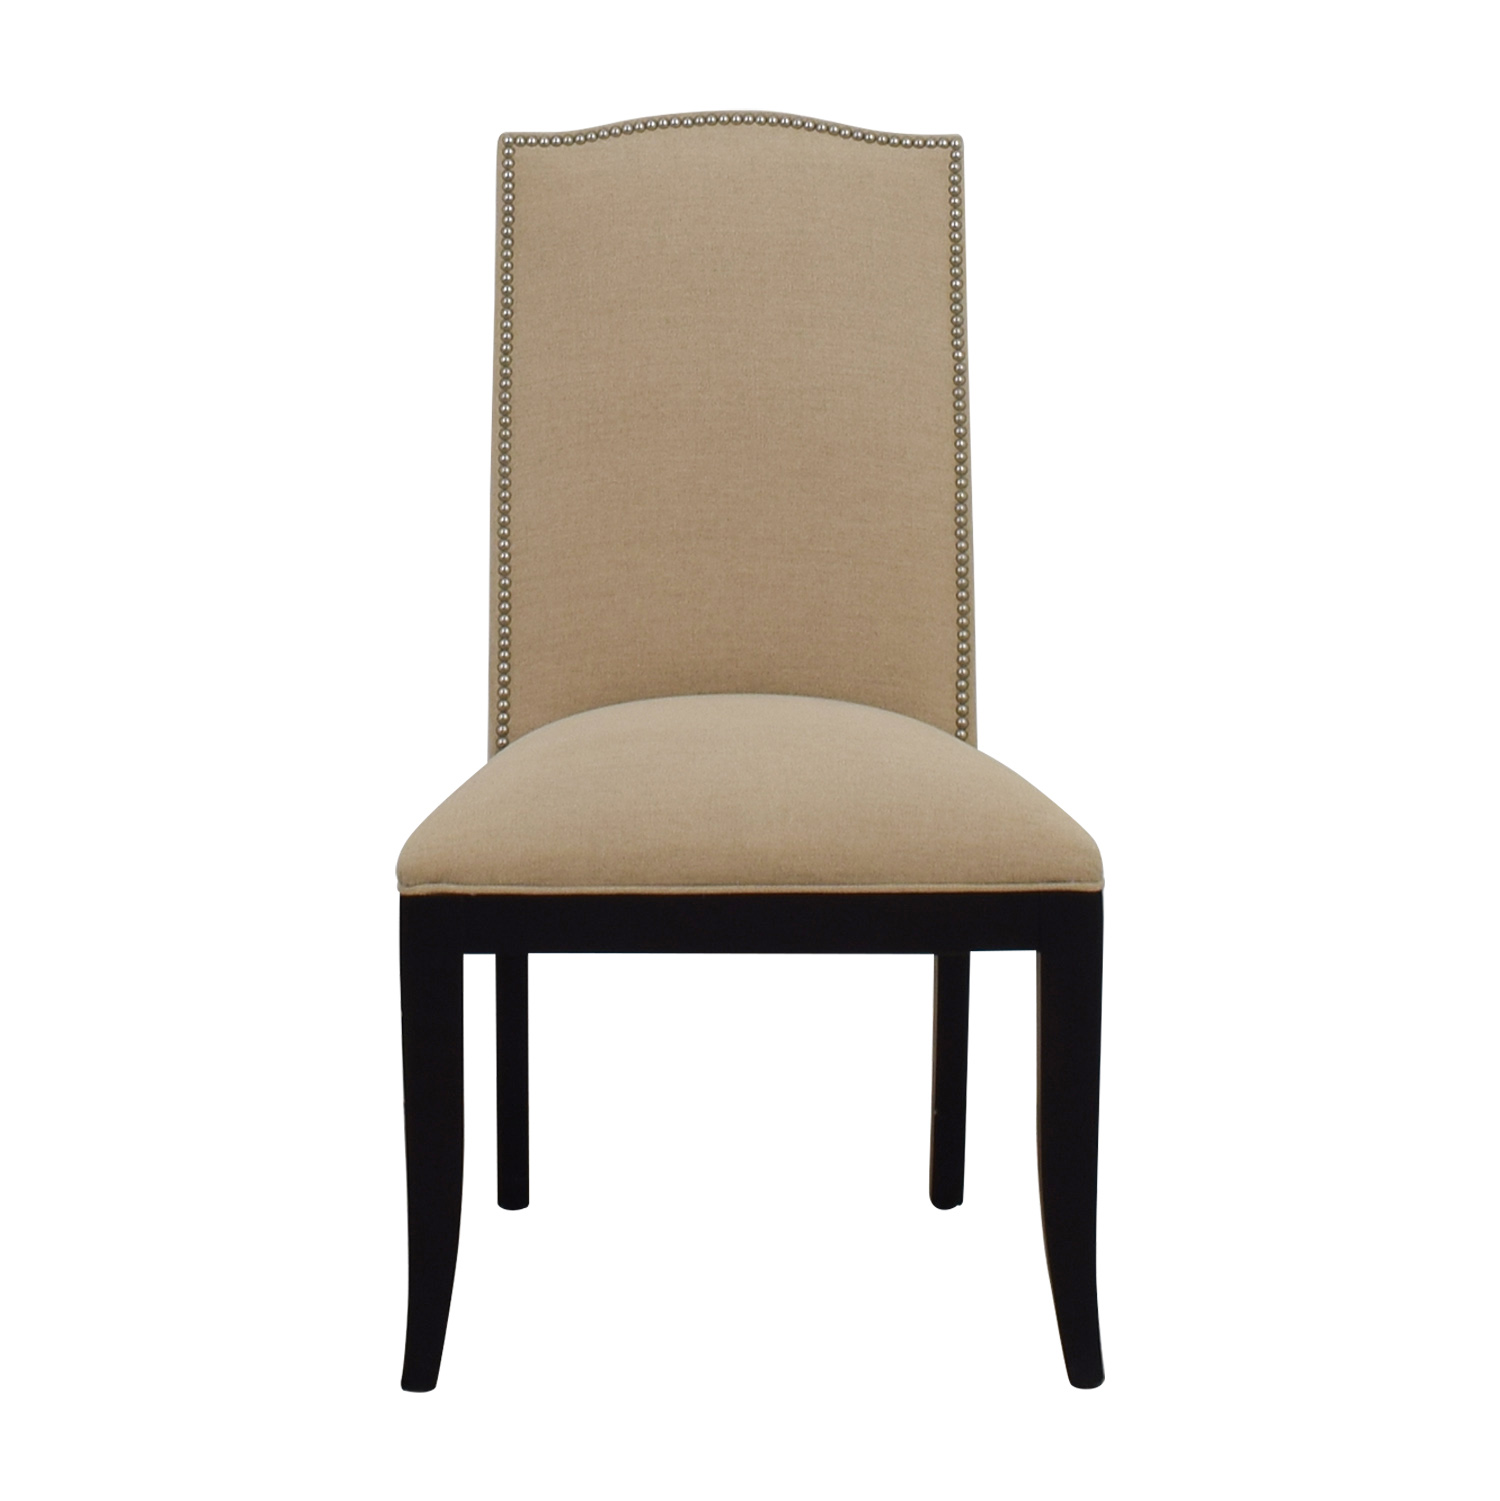 Crate And Barrel Dining Room Chairs: Crate & Barrel Crate & Barrel Colette Beige